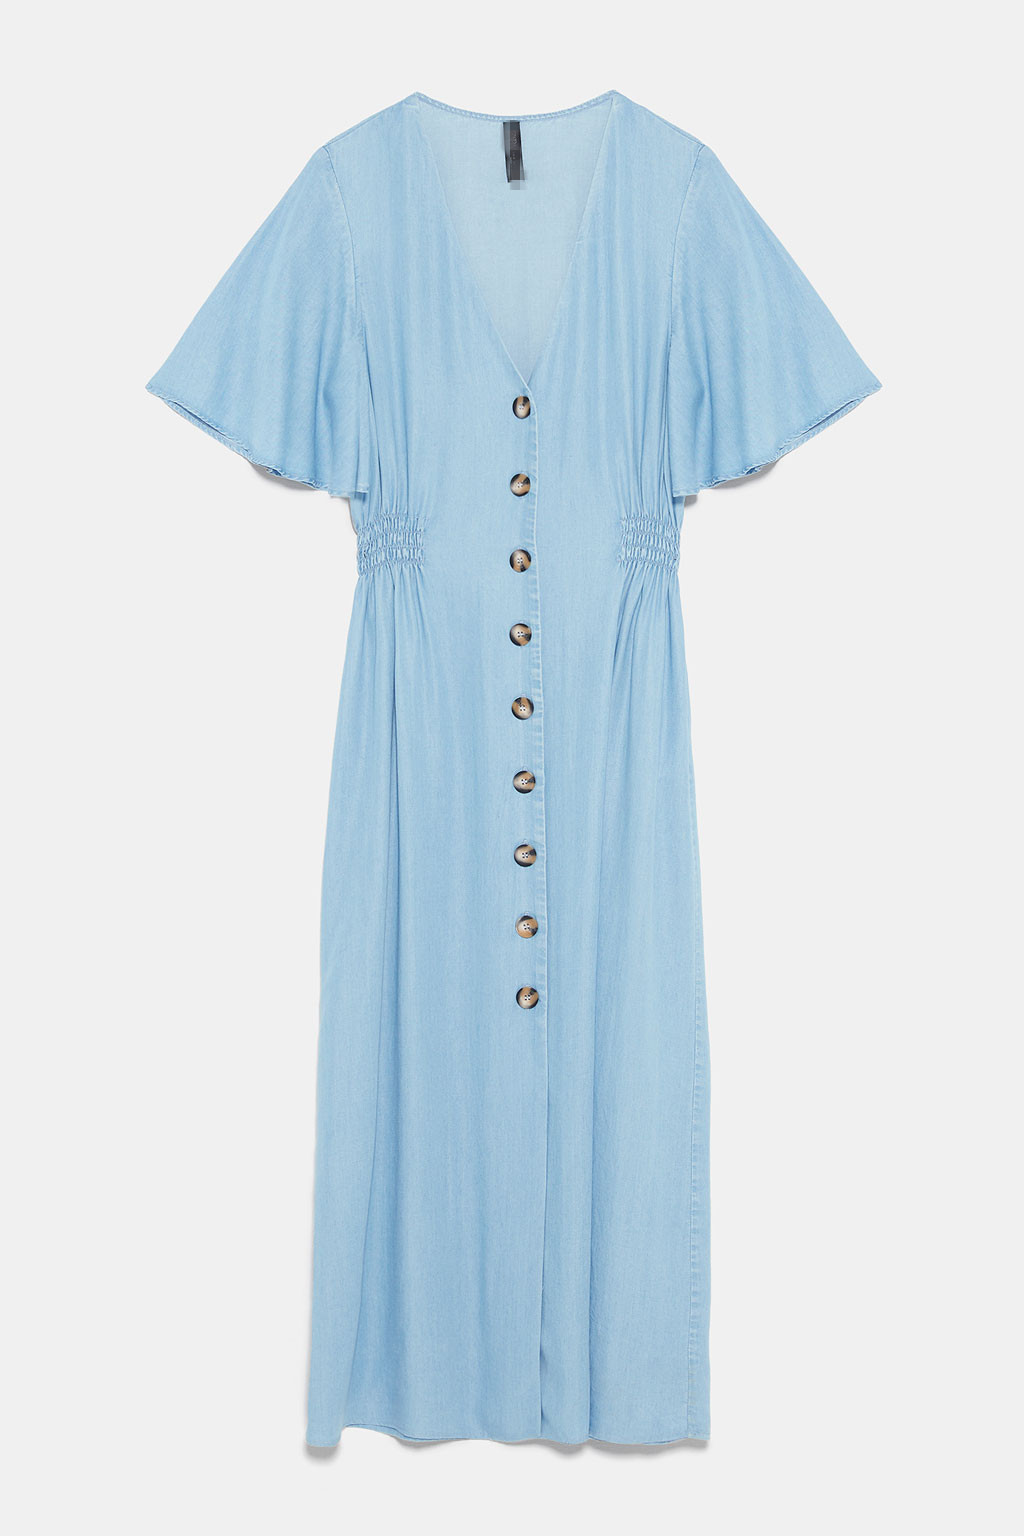 ZAraing Spring And Summer Women's V-neck Dress Decorated With Buttons